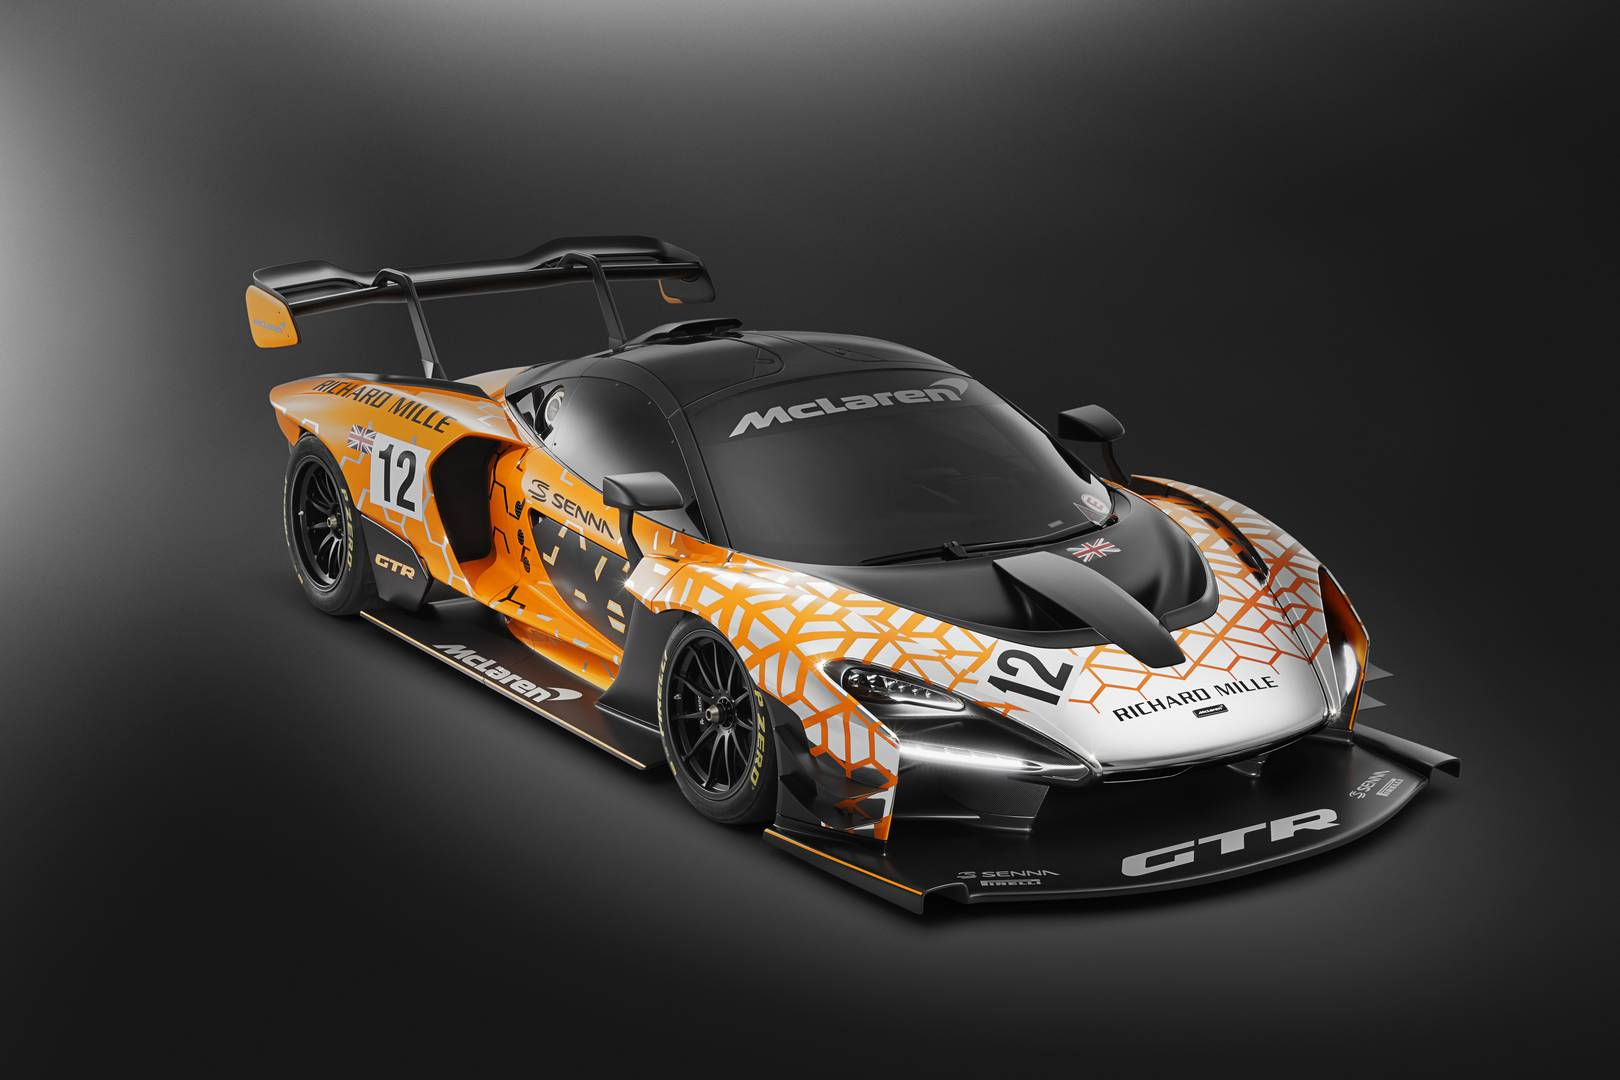 Geneva 2018: Track-only McLaren Senna GTR generates 1000kg of downforce